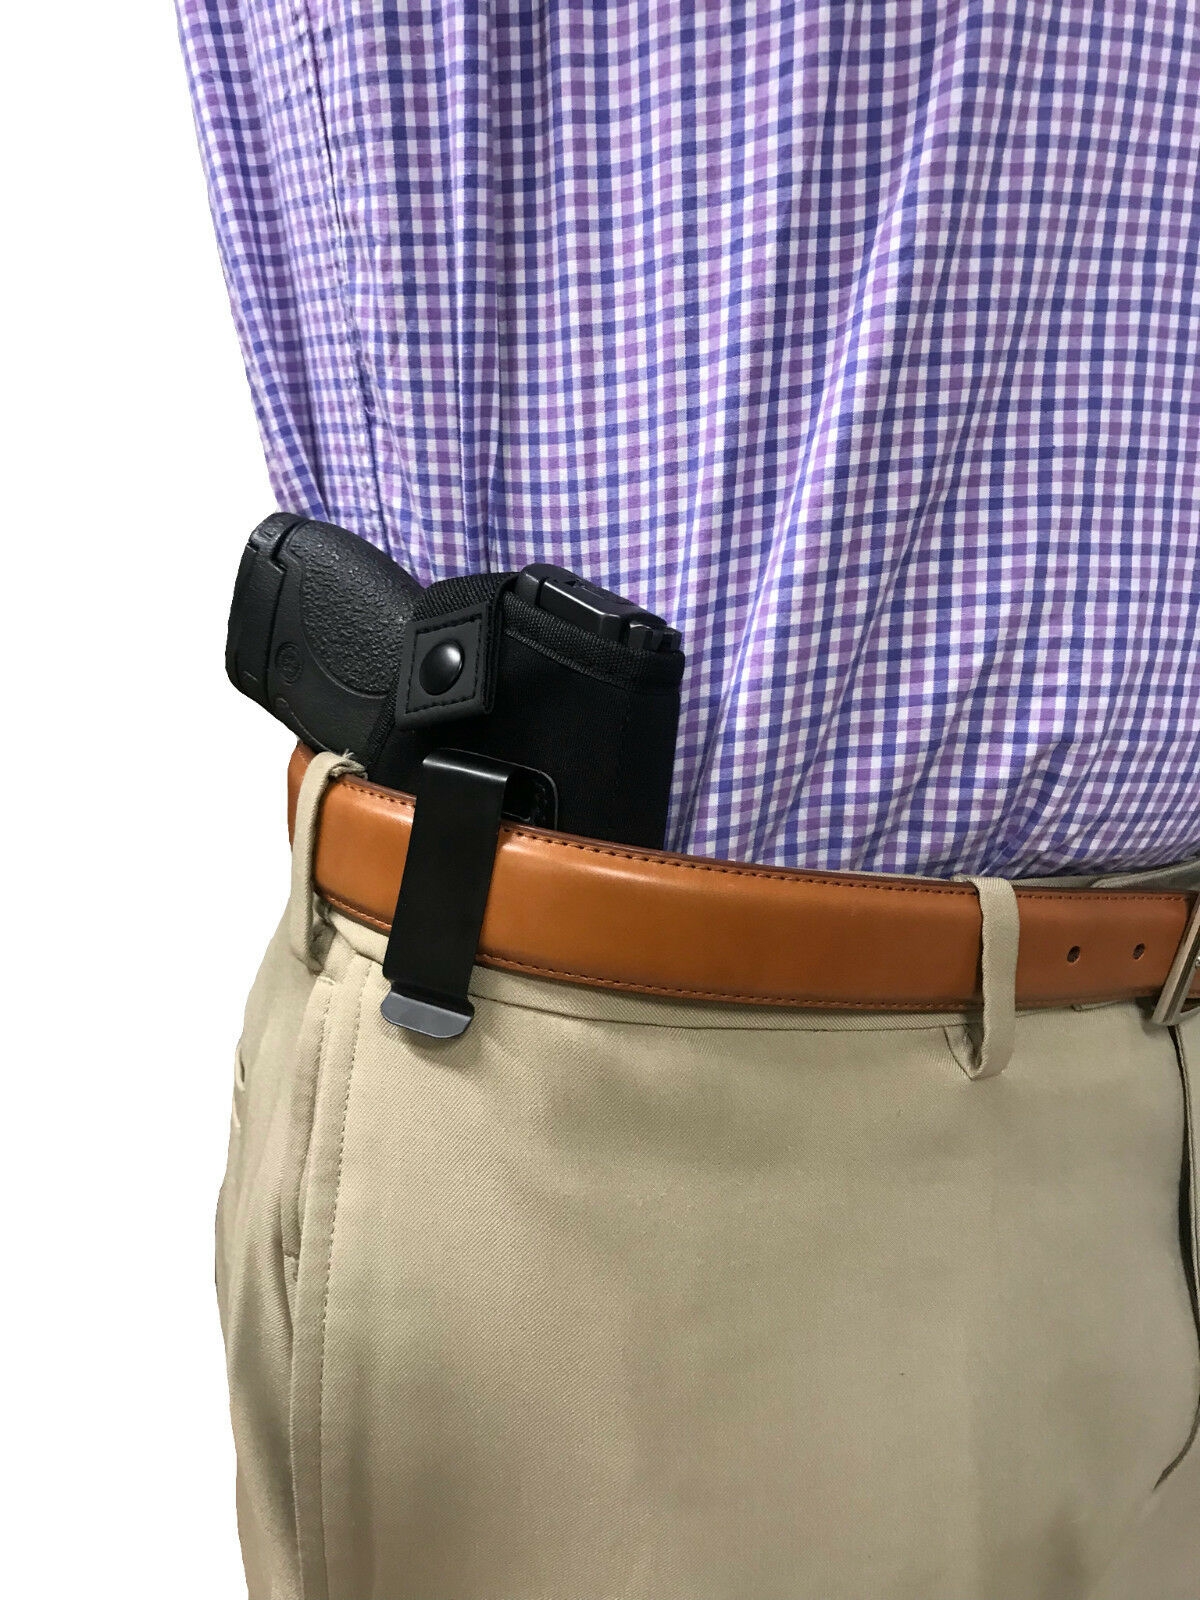 Concealment Gun Holster for SCCY CPX-2